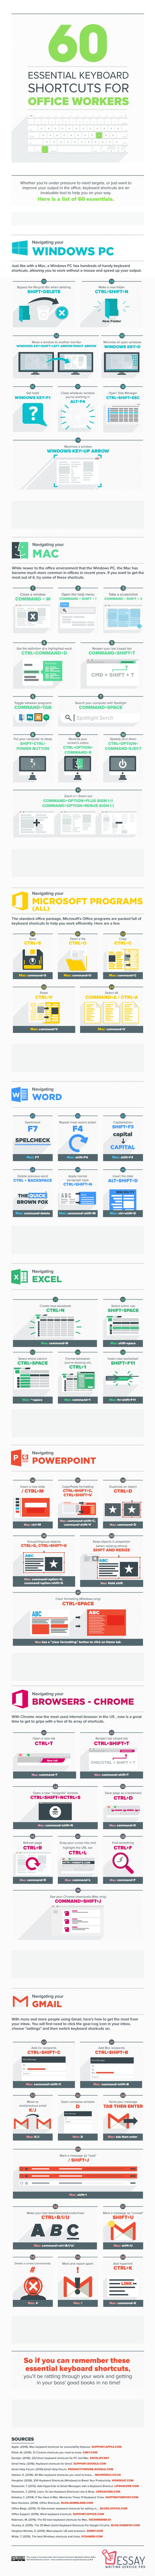 60 Essential Keyboard Shortcuts For Office Employees #Infographic #Career #Productivity